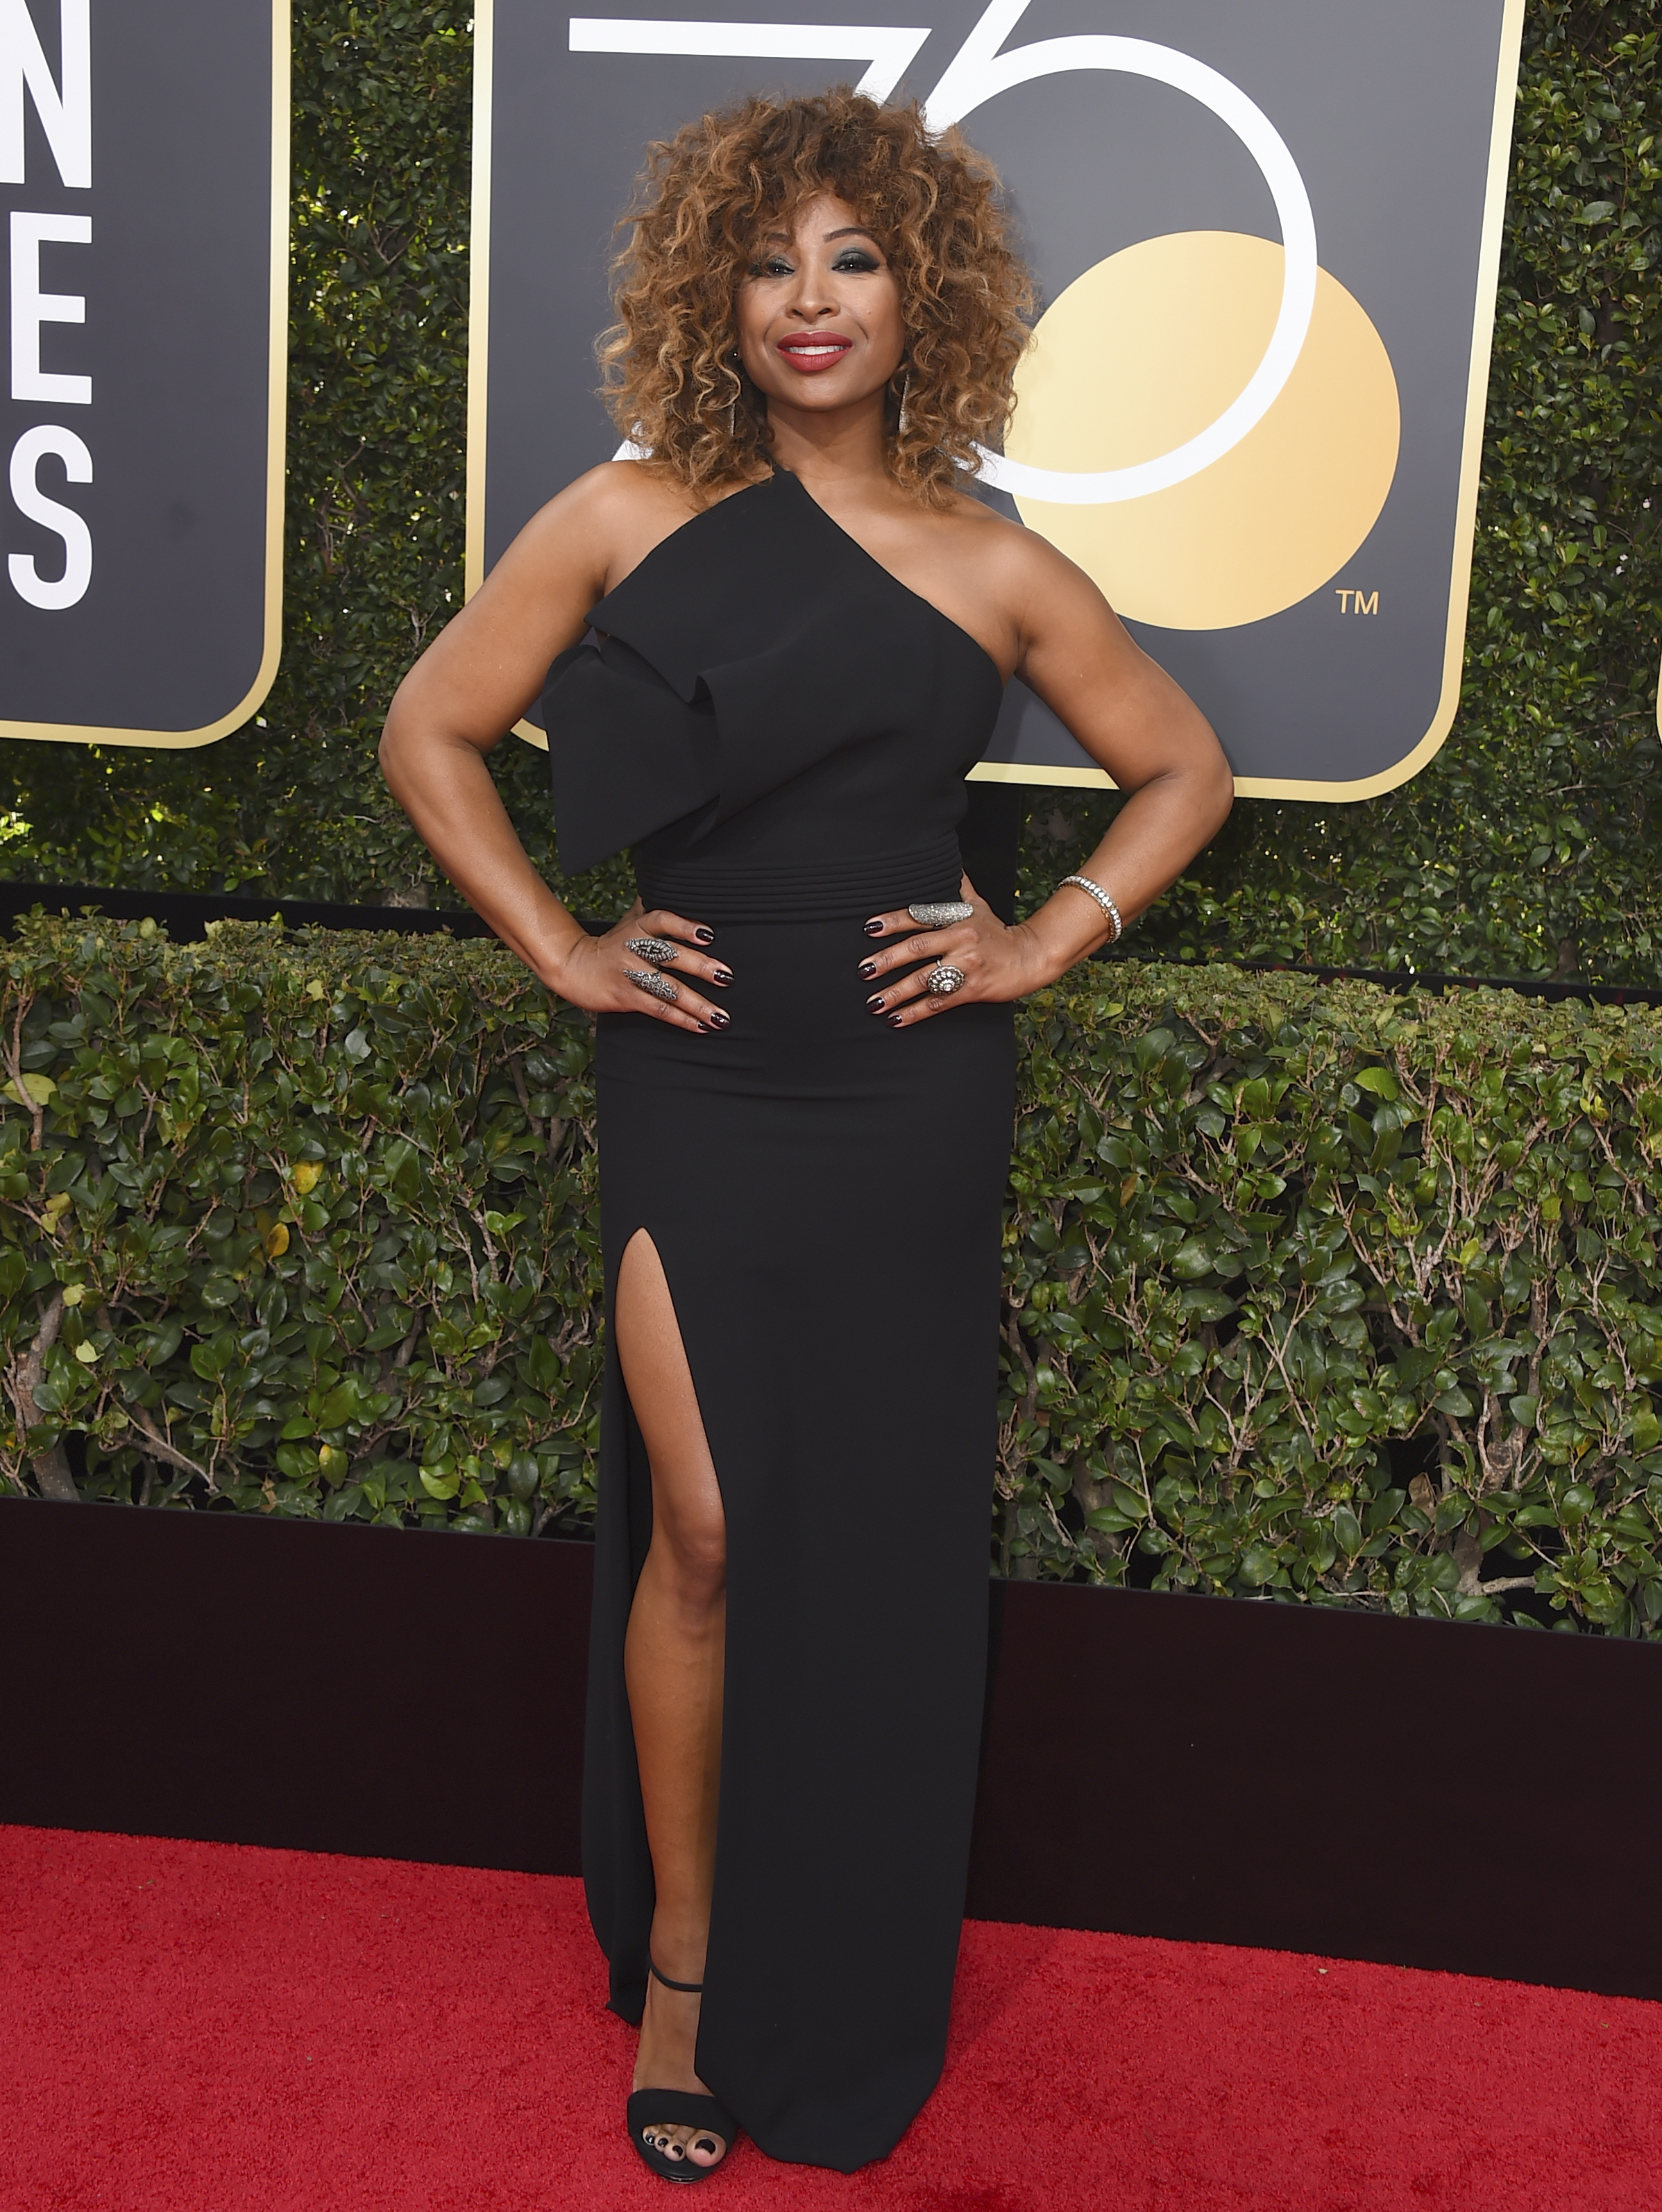 <div class='meta'><div class='origin-logo' data-origin='AP'></div><span class='caption-text' data-credit='Jordan Strauss/Invision/AP'>Tanika Ray arrives at the 75th annual Golden Globe Awards at the Beverly Hilton Hotel on Sunday, Jan. 7, 2018, in Beverly Hills, Calif.</span></div>